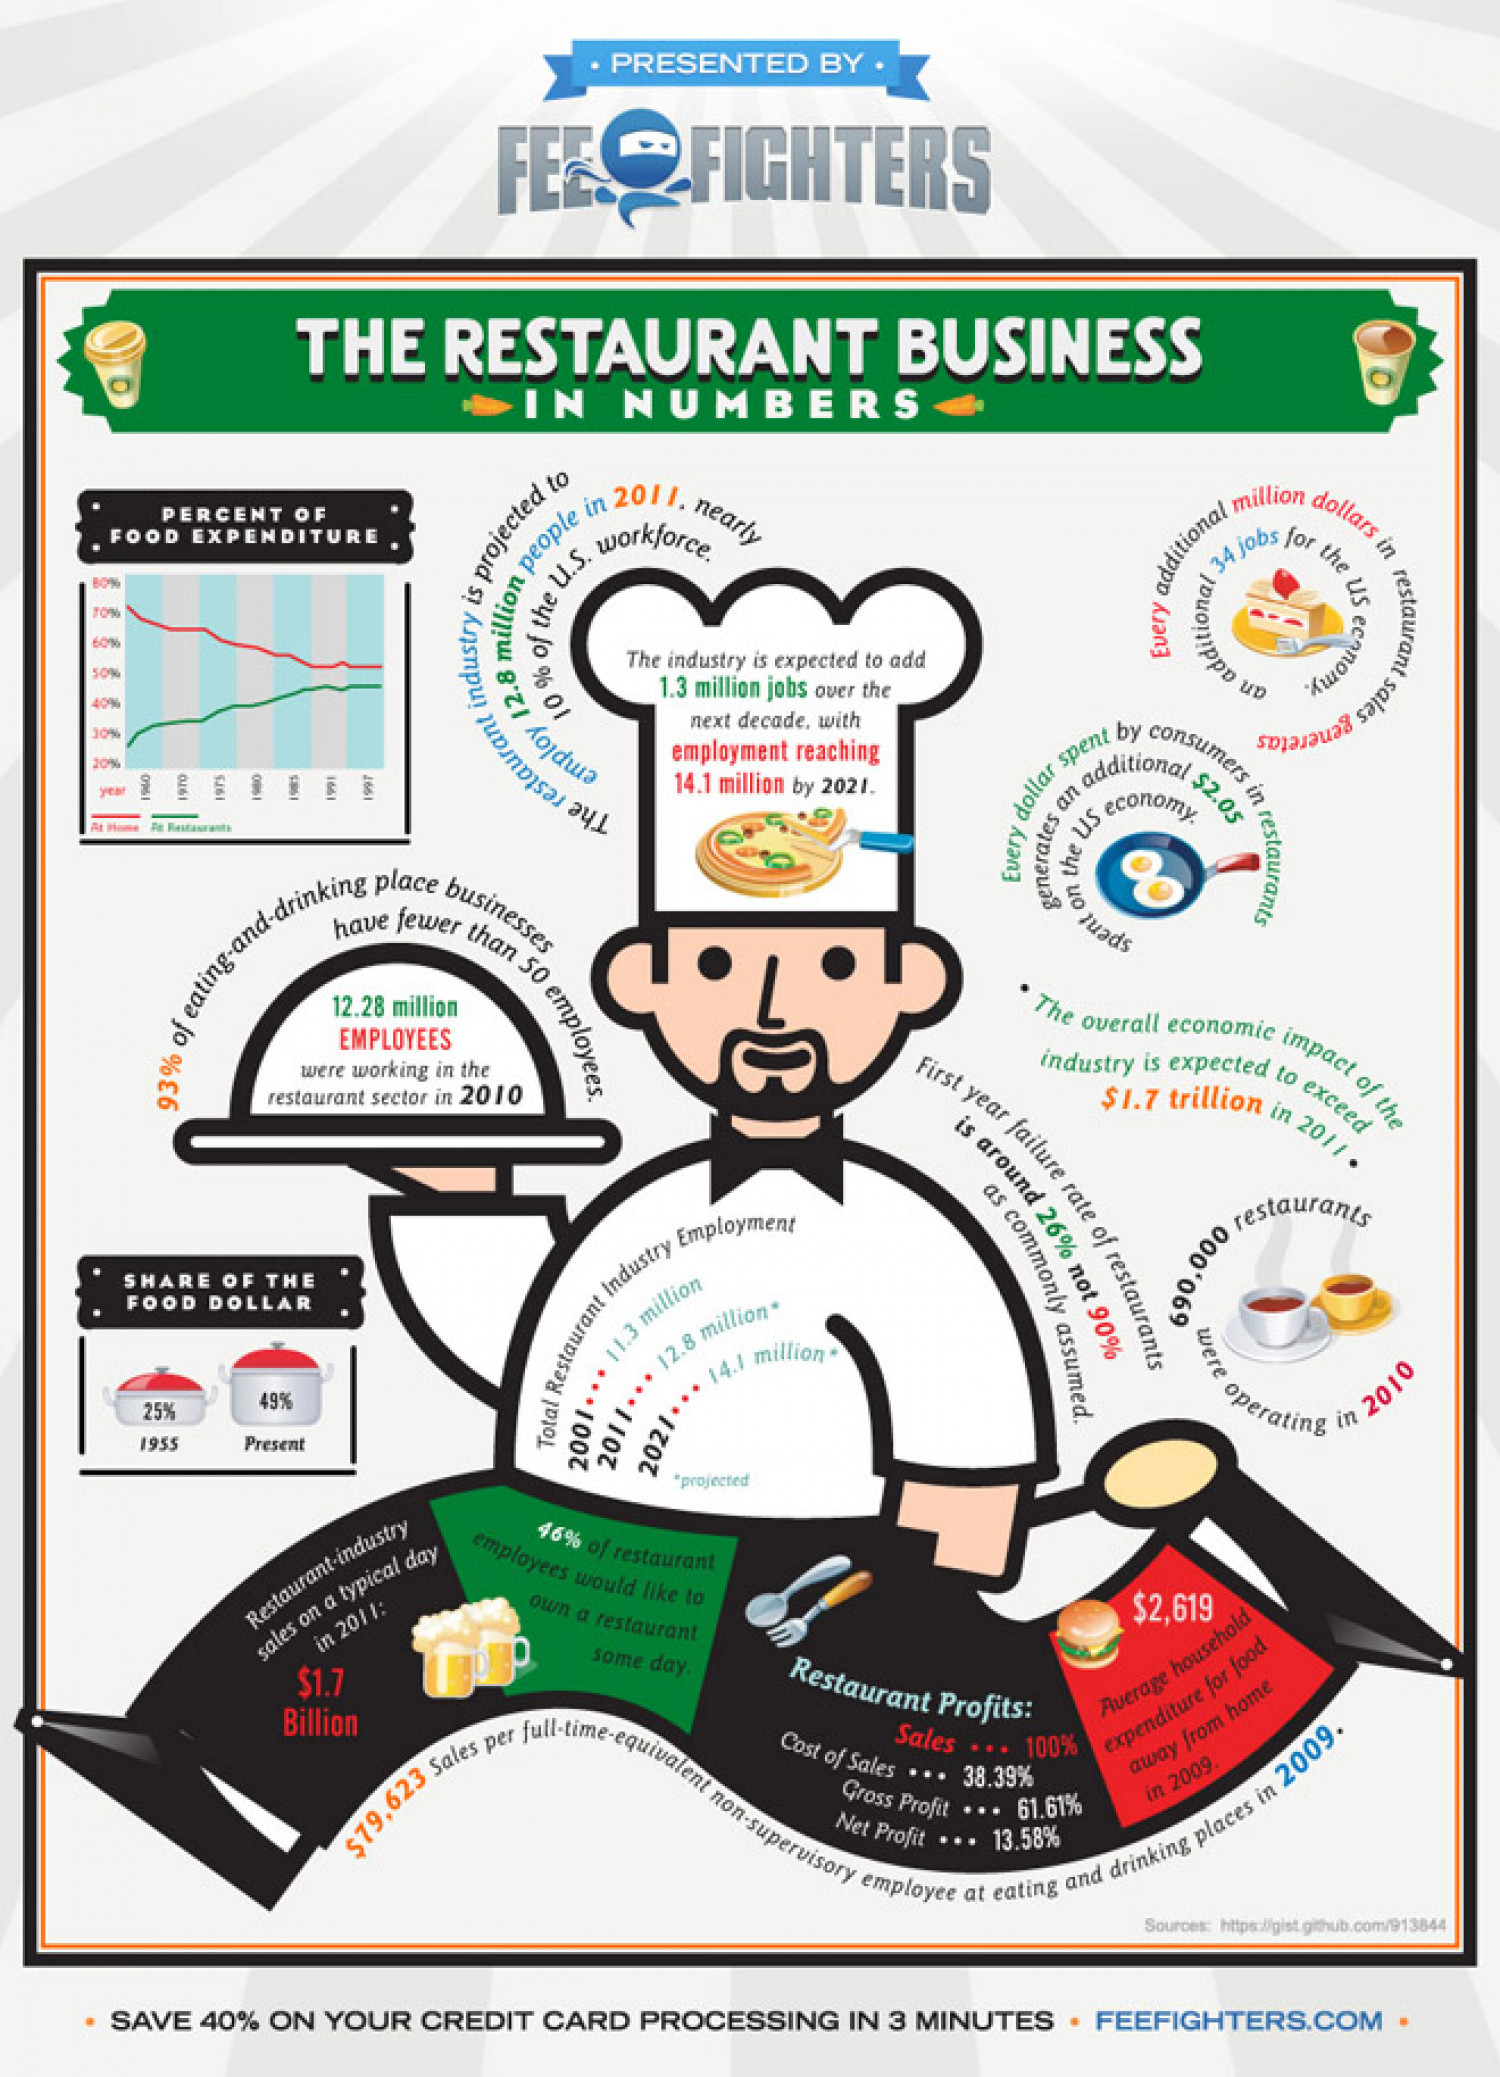 15 Things You Didn't Know About the Restaurant Industry Infographic